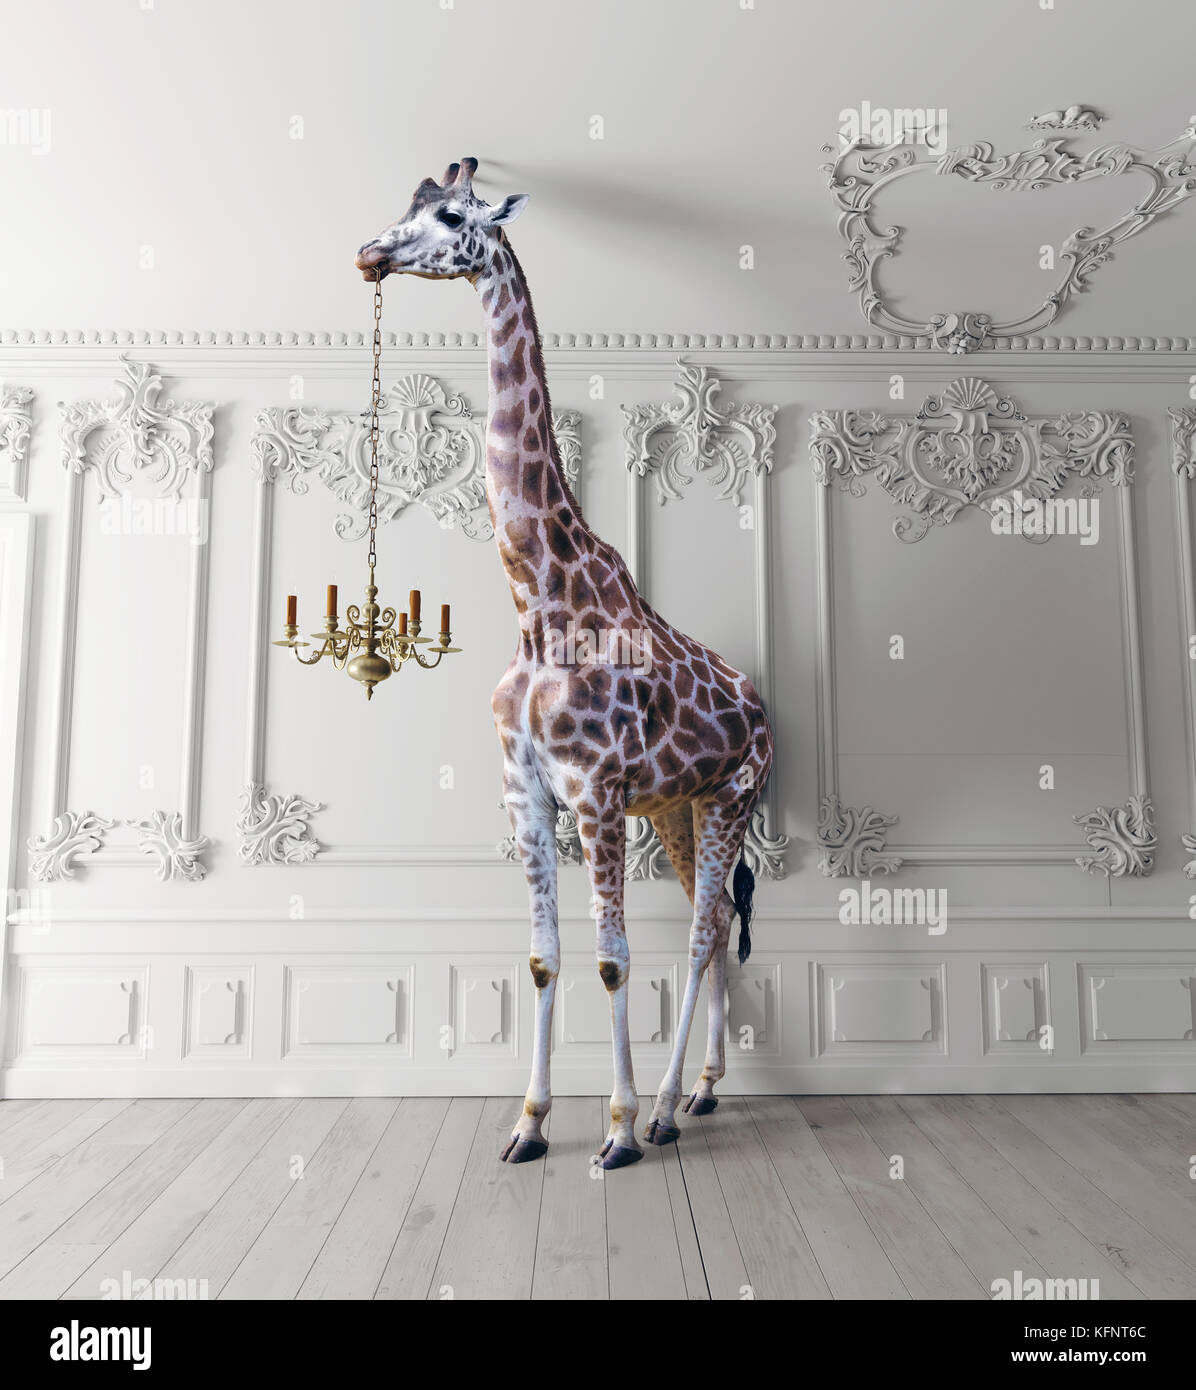 the giraffe hold the chandelier in the luxury decorated interior - Stock Image